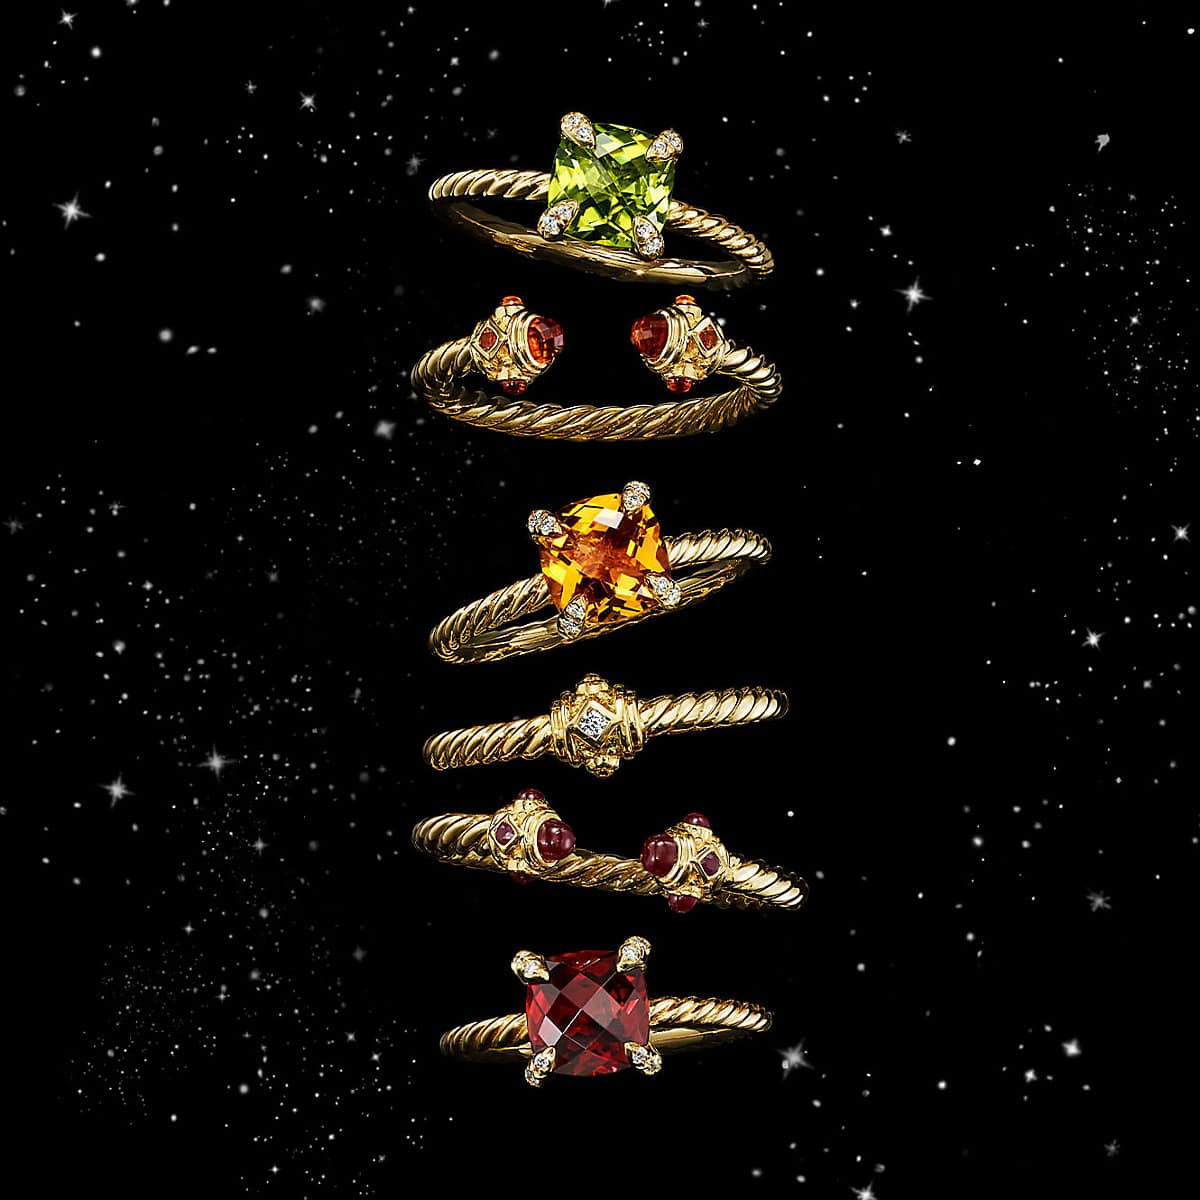 A color photo shows a vertical stack of six David Yurman women's rings from the Renaissance, Châtelaine and Venetian Quatrefoil collections floating in front of a starry night sky. The jewelry is crafted from 18K yellow gold with or without pavé diamonds and colored gemstones.